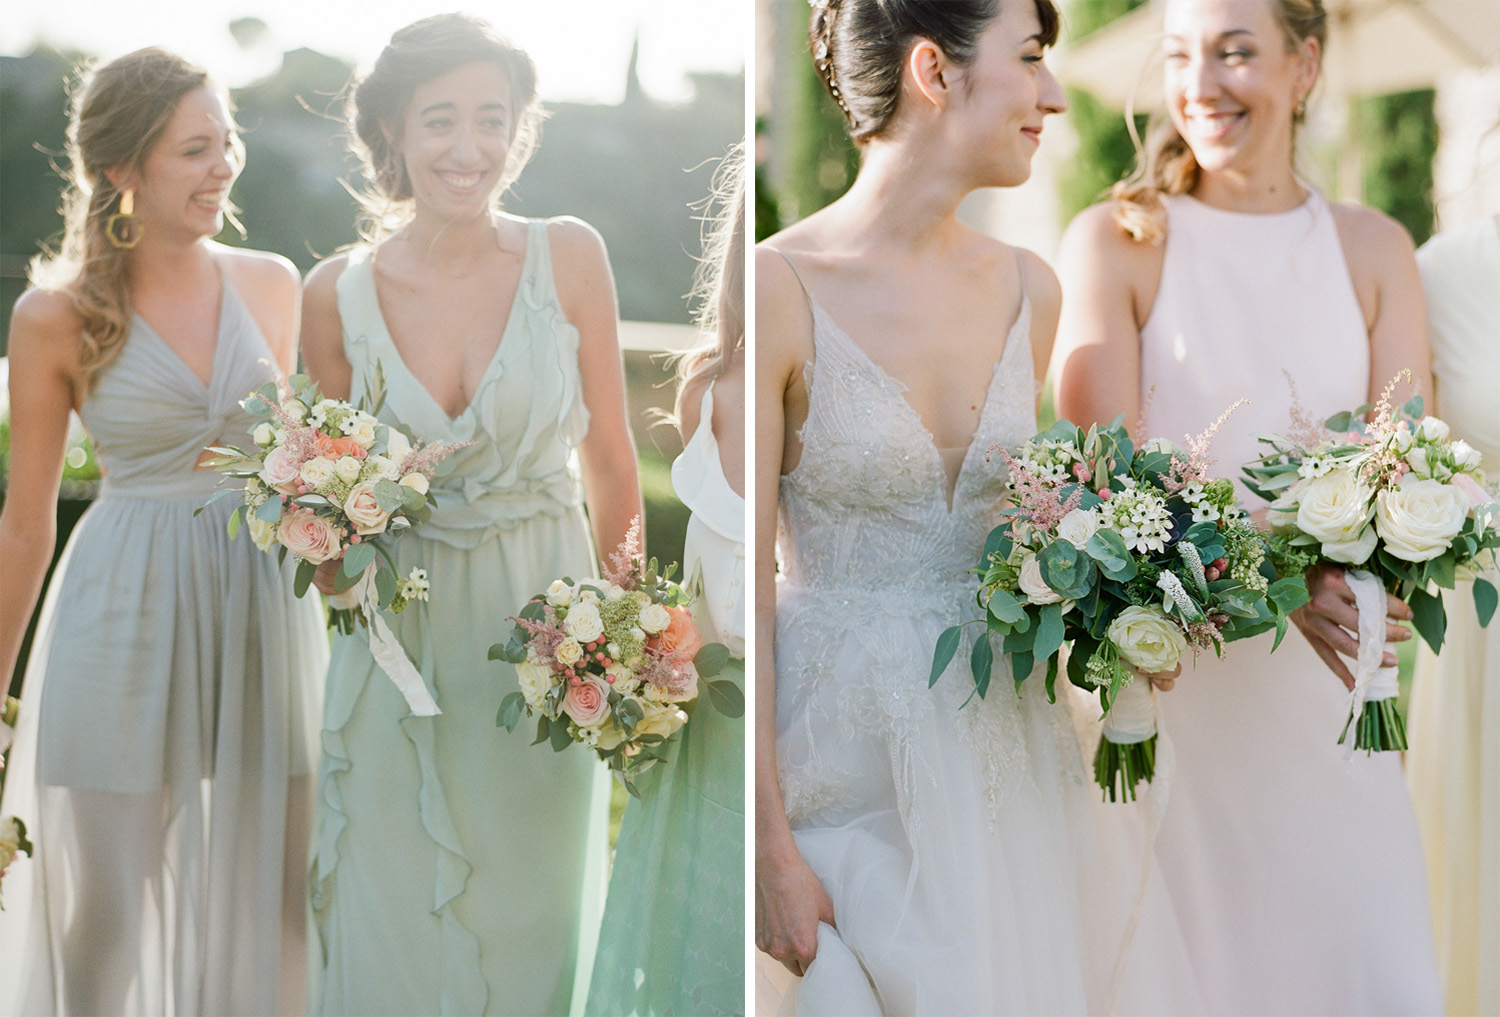 Pastel bridesmaids gowns and matching floral bouquets; Sylvie Gil Photography